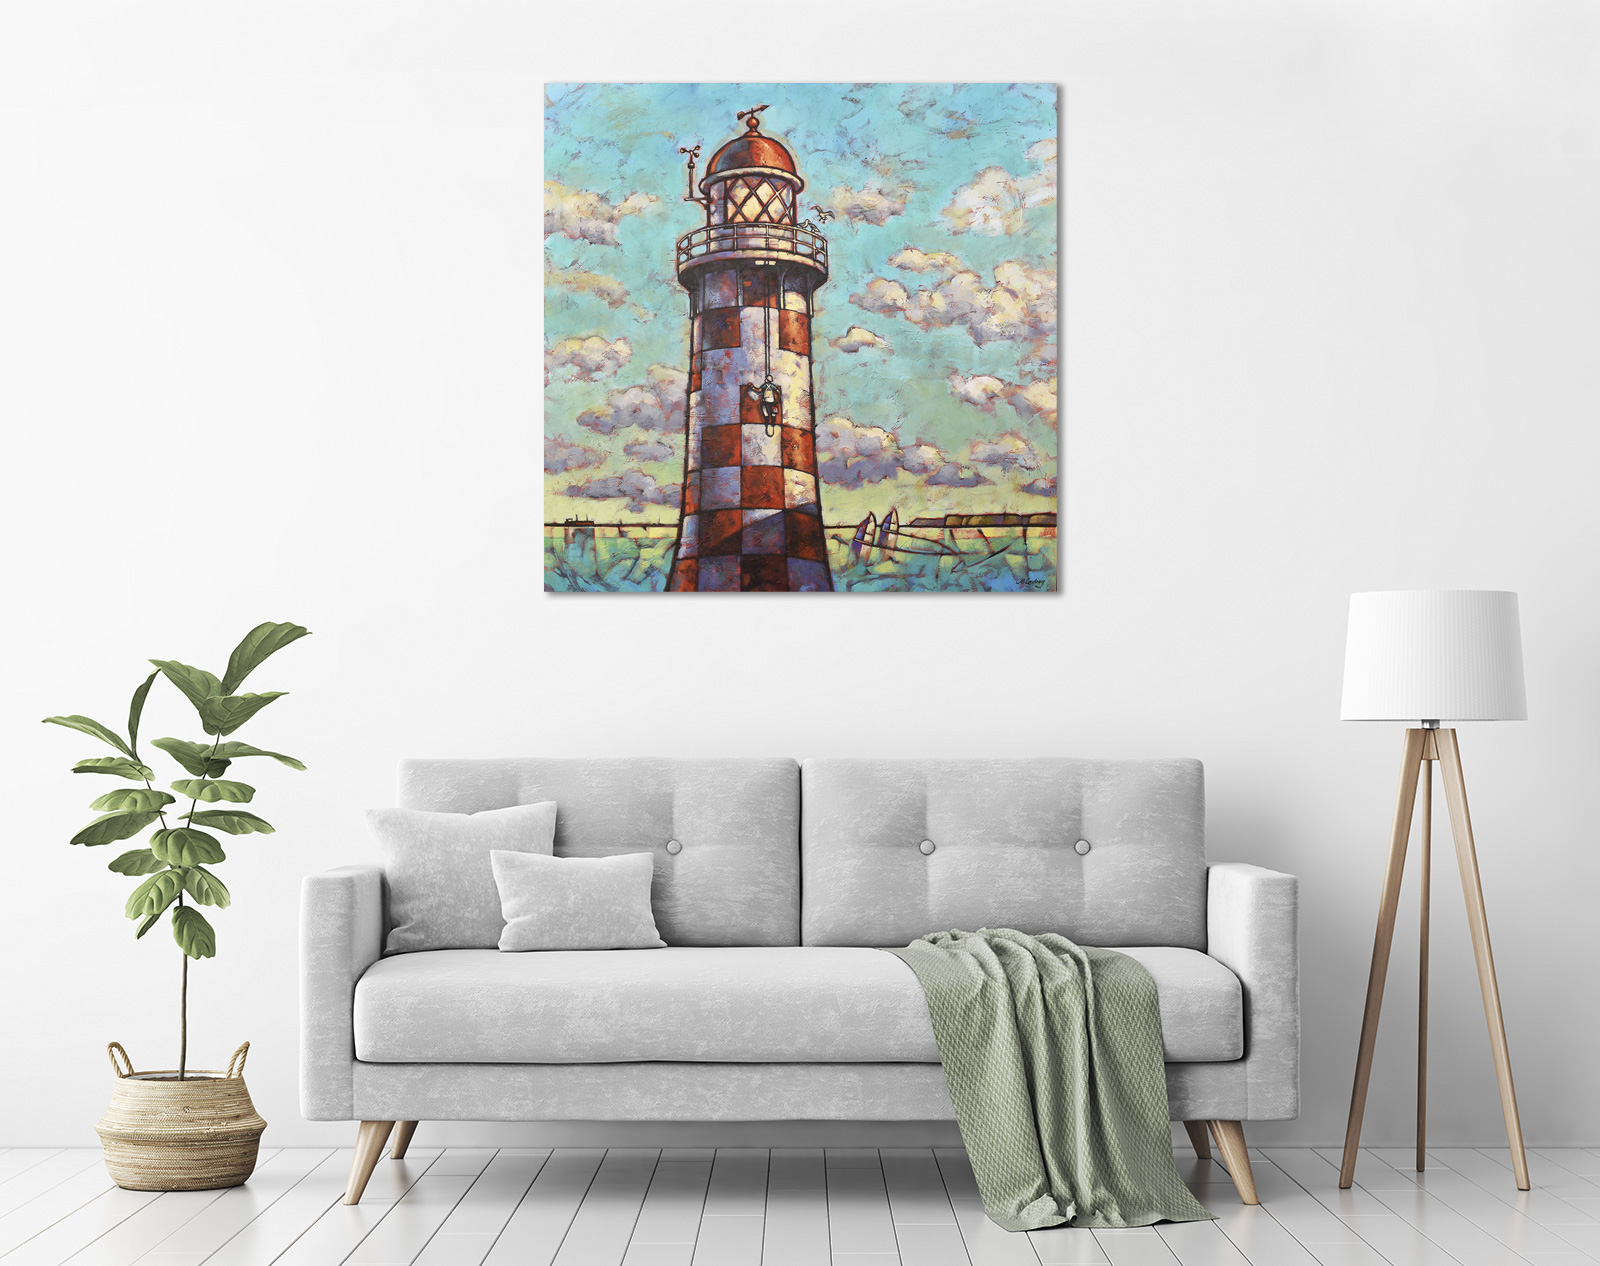 Antipodean Lighthouse Blues in a room